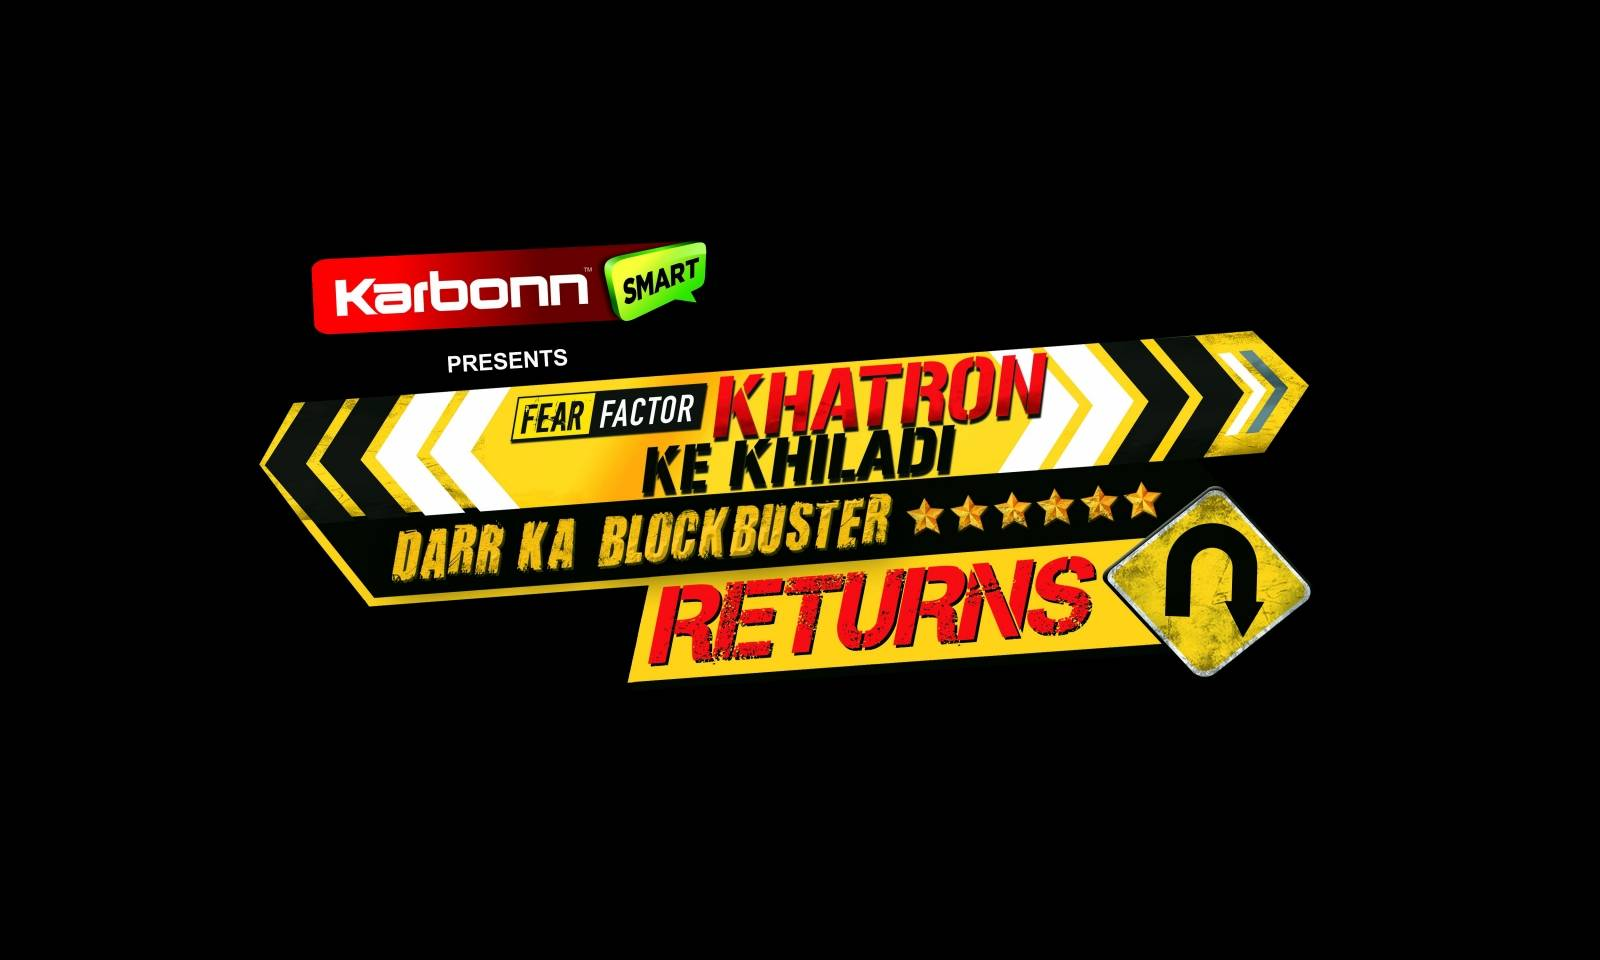 Fear Factor Khatron ke Khiladi Darr ka Blockbuster Returns